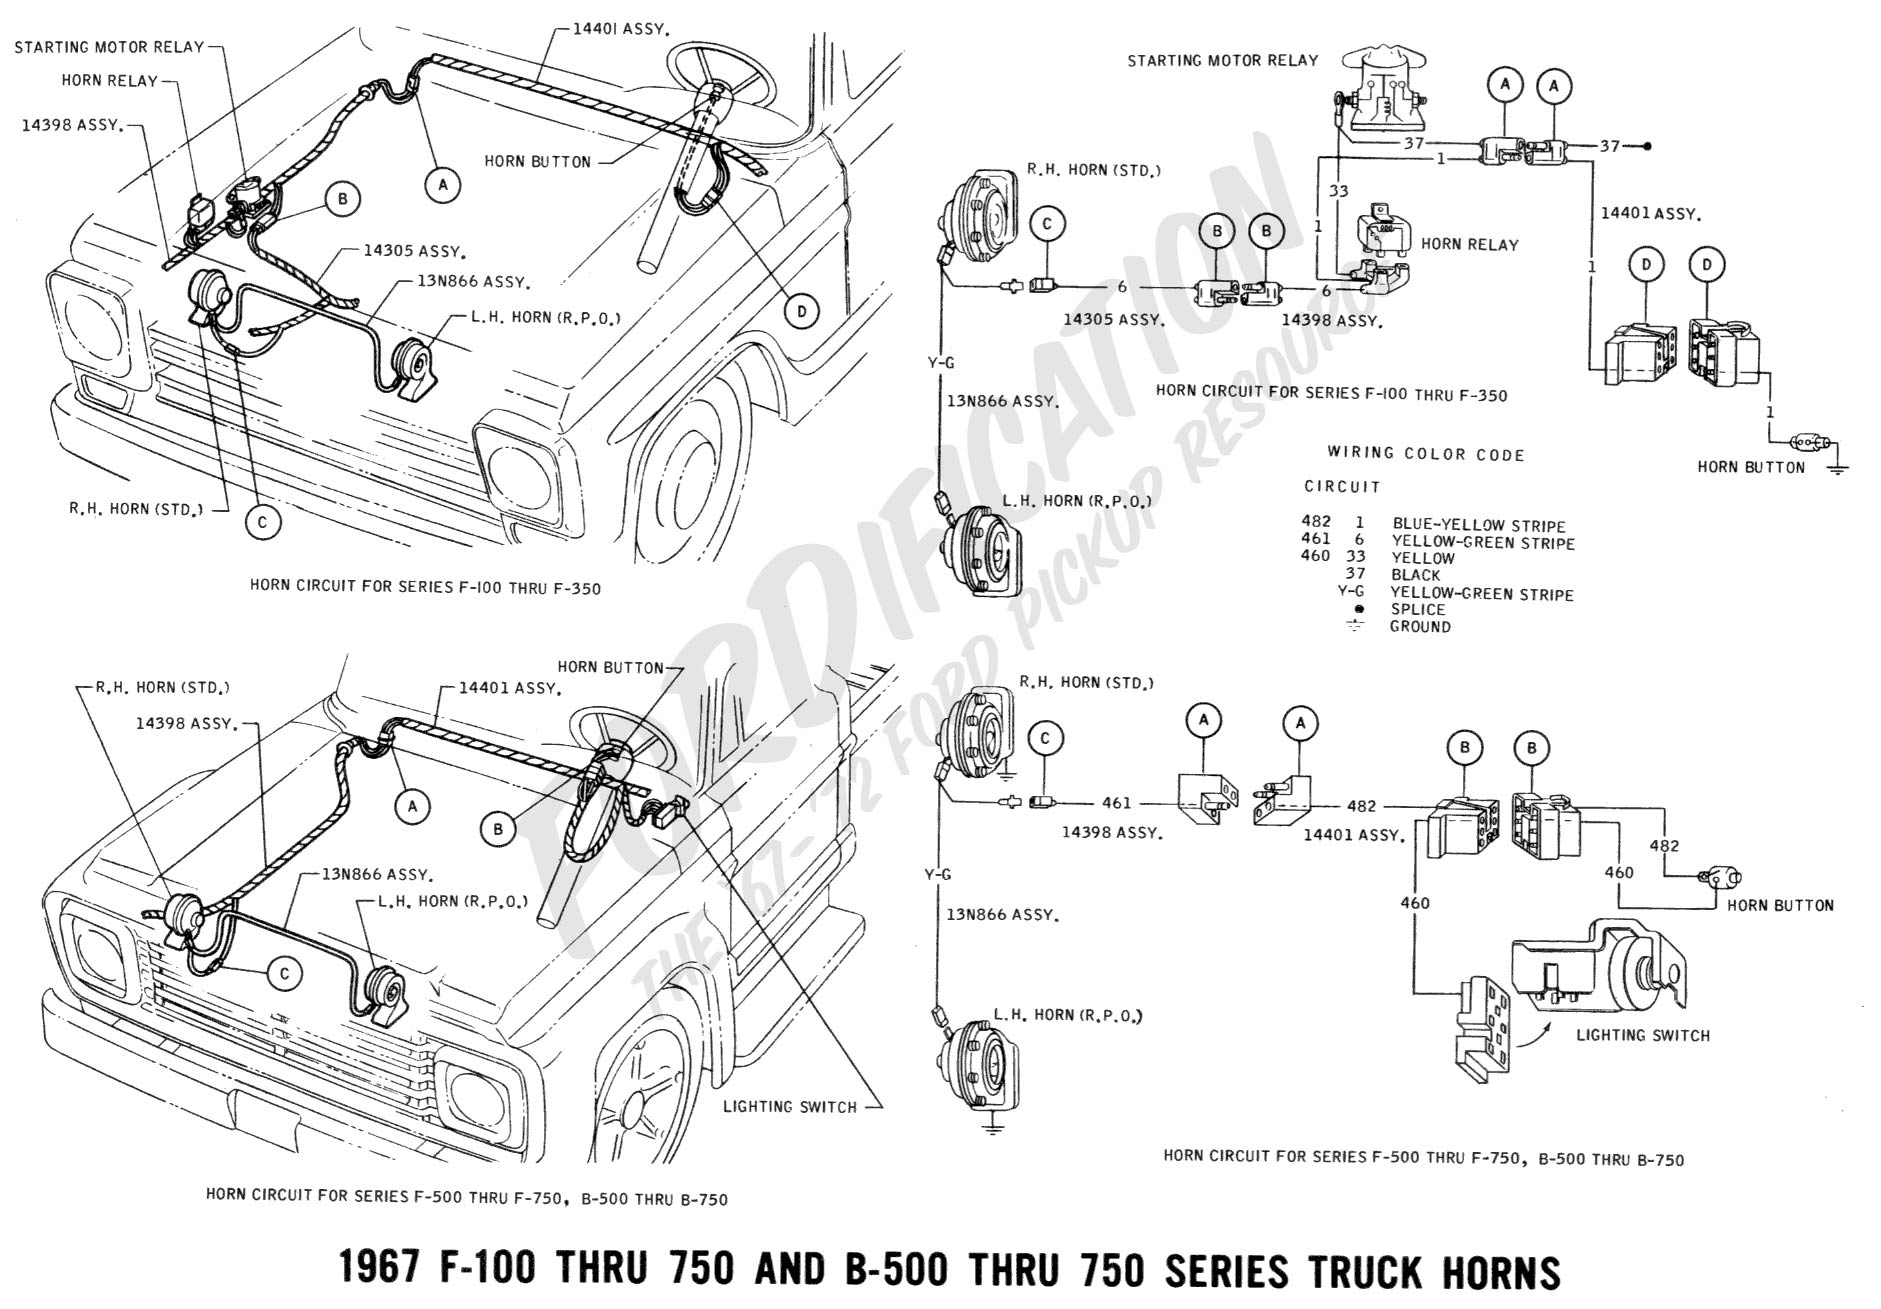 1981 ford wiring diagram wiring diagram database 1966 ford f-250 truck wiring diagram ford truck technical drawings and schematics section h wiring 1981 ford f 150 wiring diagram 1981 ford wiring diagram